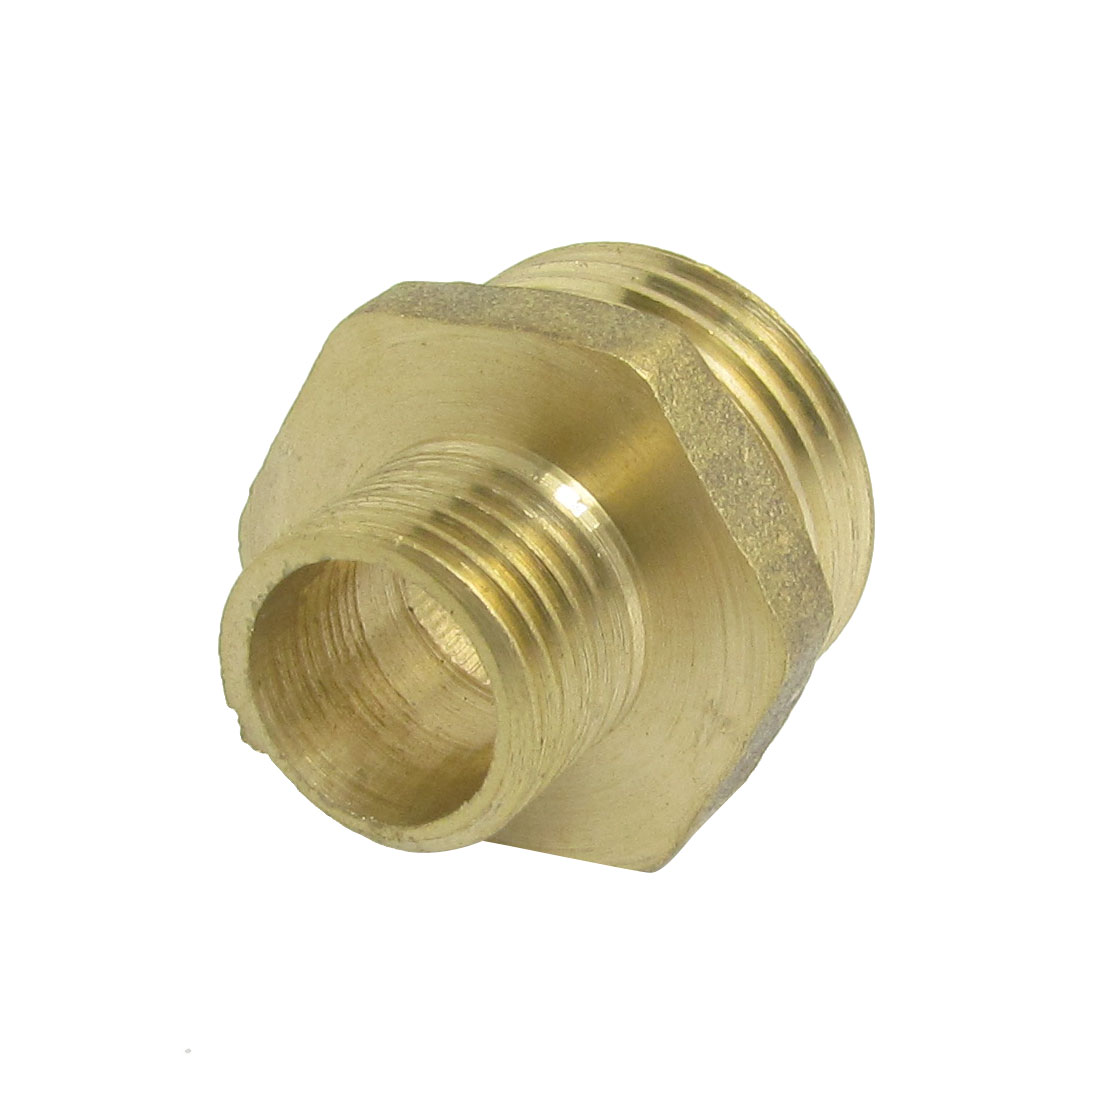 20mm x 13mm Male Thread Reducer Brass Pipe Nipple Fitting